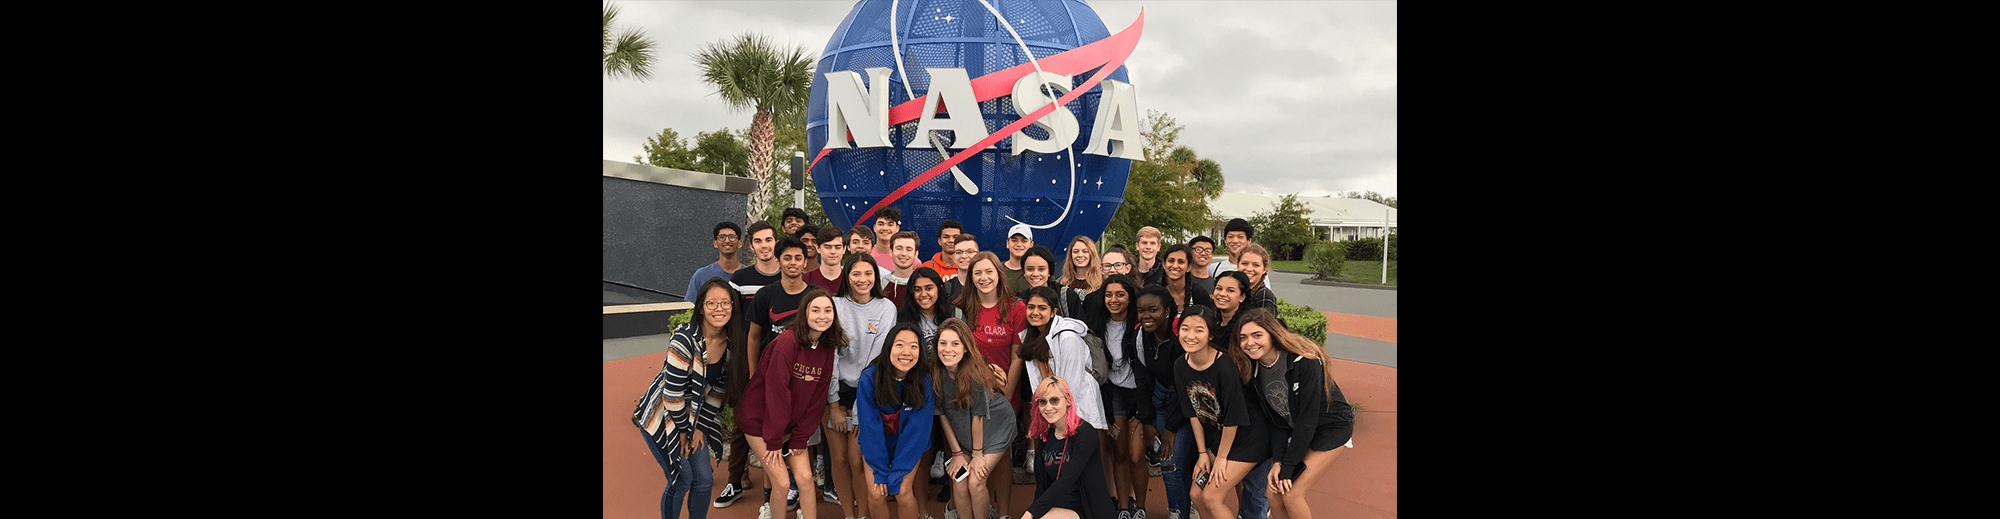 Students posing in front of a NASA sign